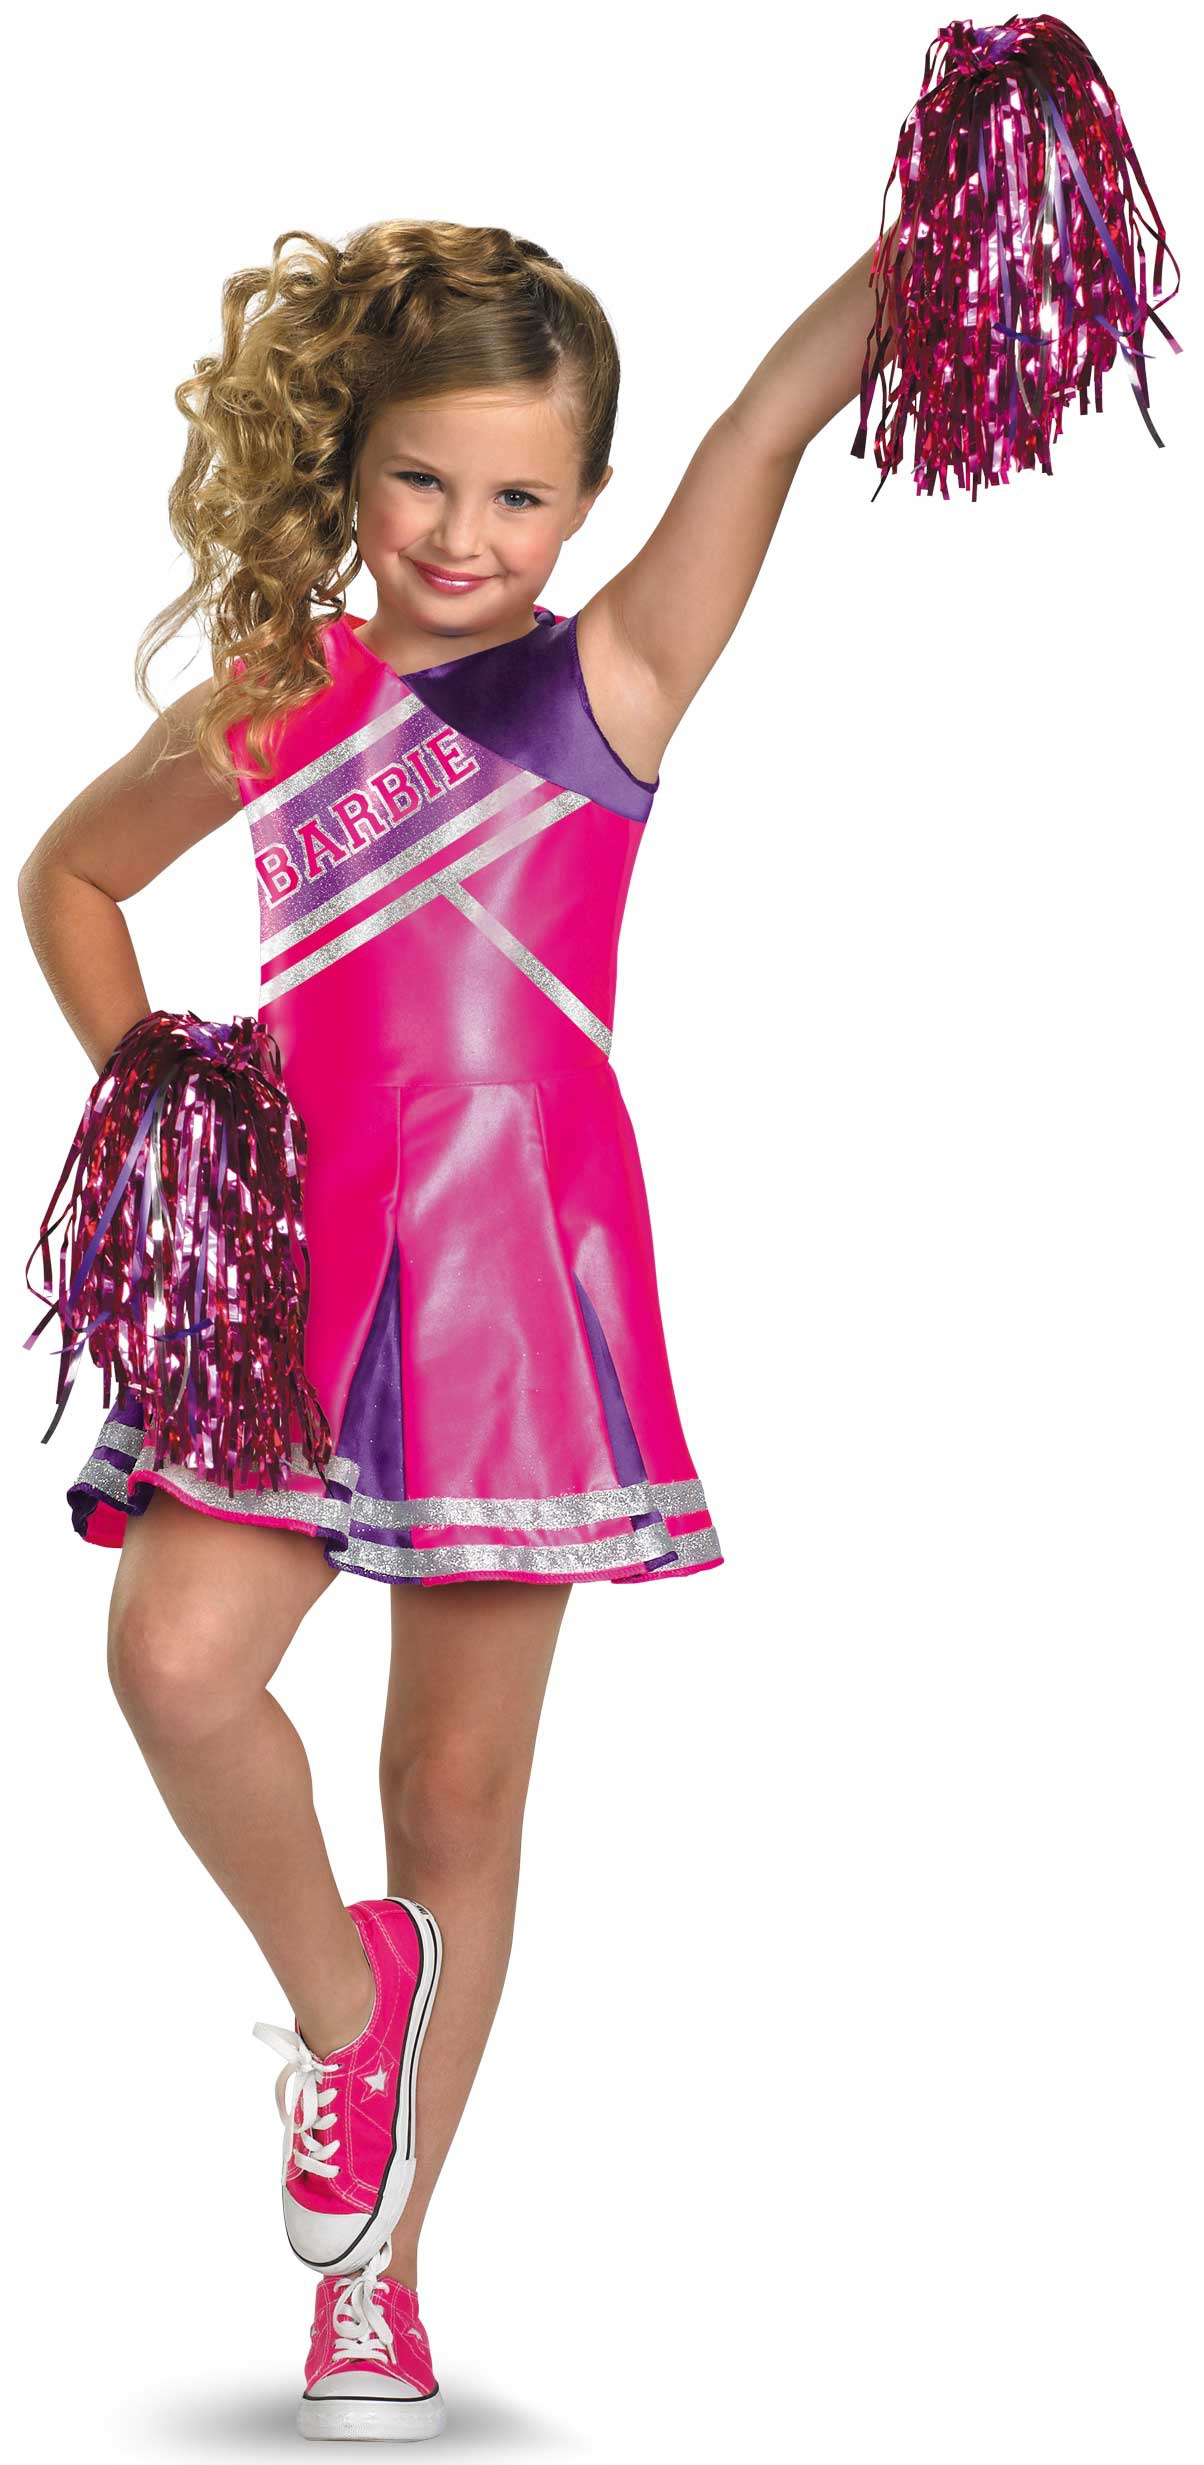 Seems remarkable Adult barbie halloween costume understand you